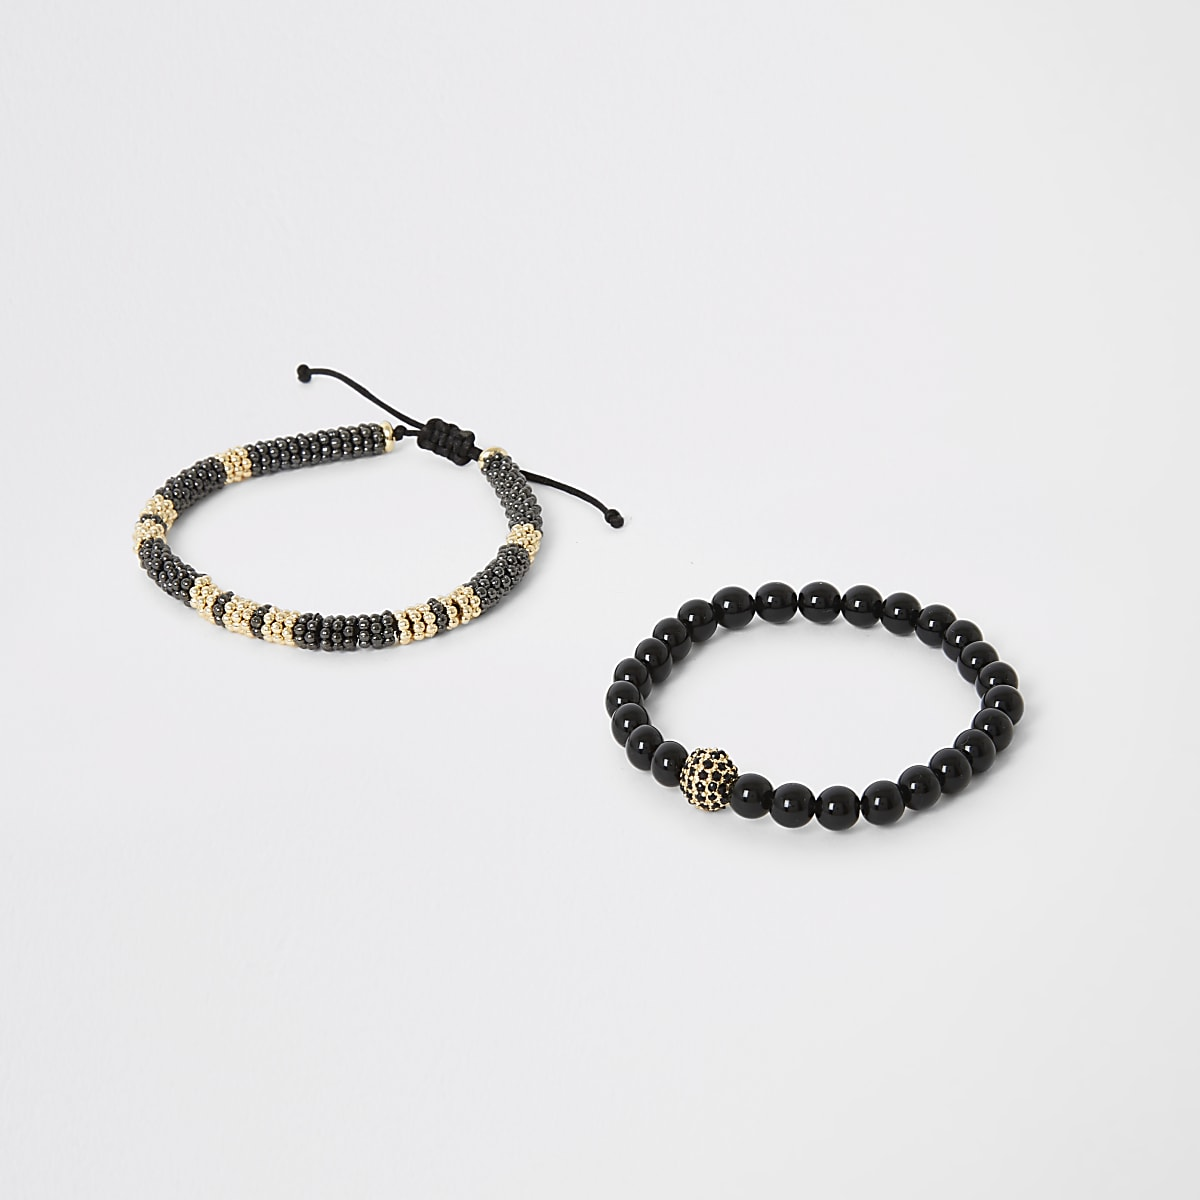 Black beaded drawstring bracelet 2 pack